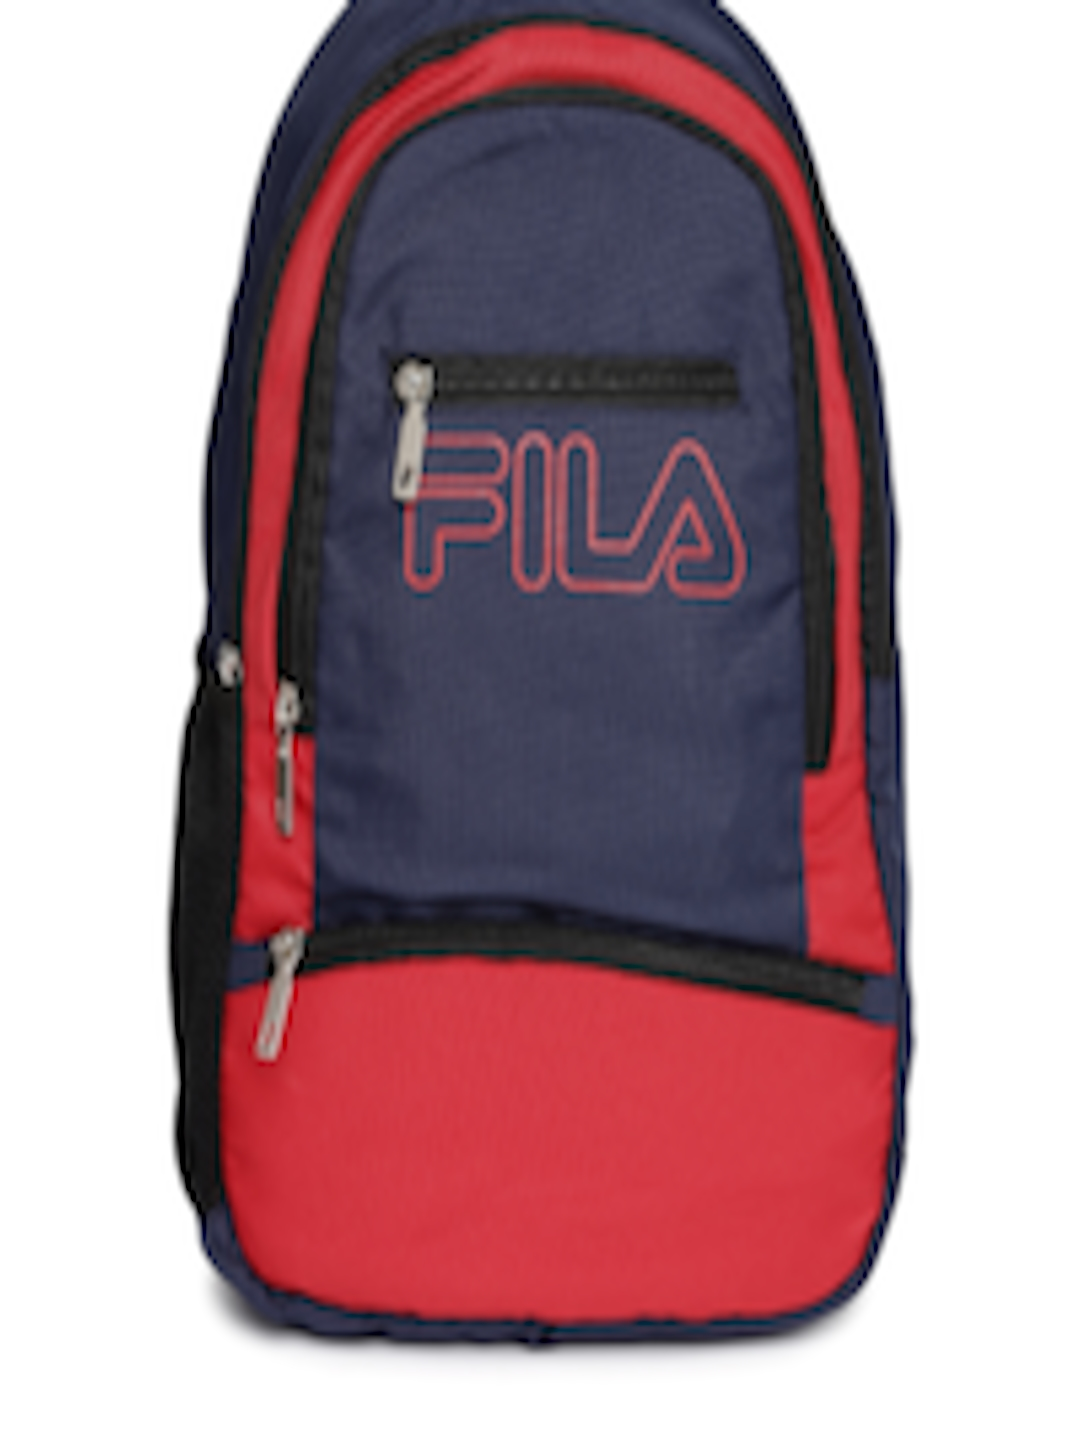 b1158569450e Buy FILA Unisex Navy   Red Laptop Backpack - Backpacks for Unisex 1275334